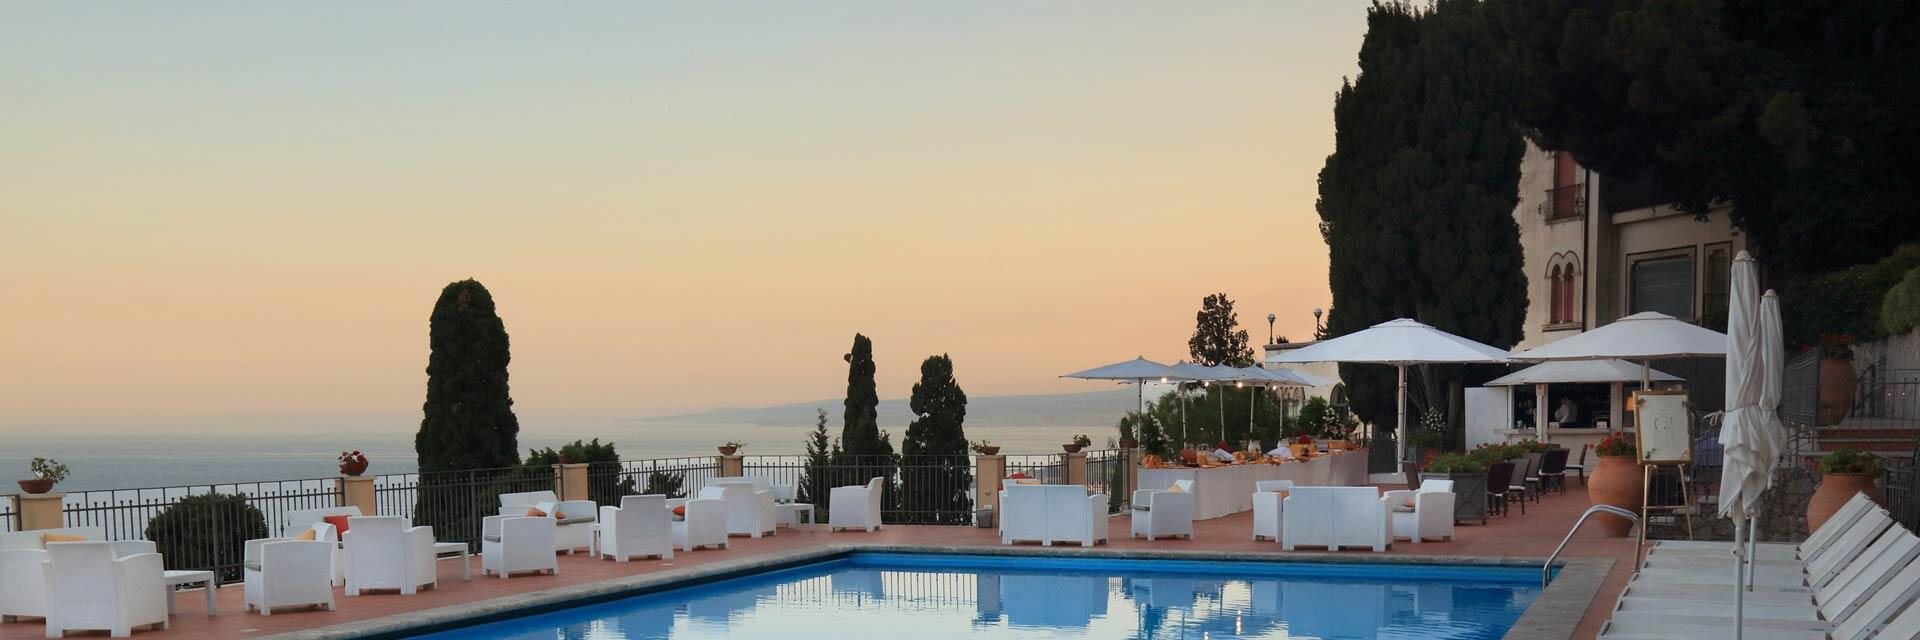 sanpietrotaormina en offer-summer-hotel-5-stars-taormina-with-pool 012